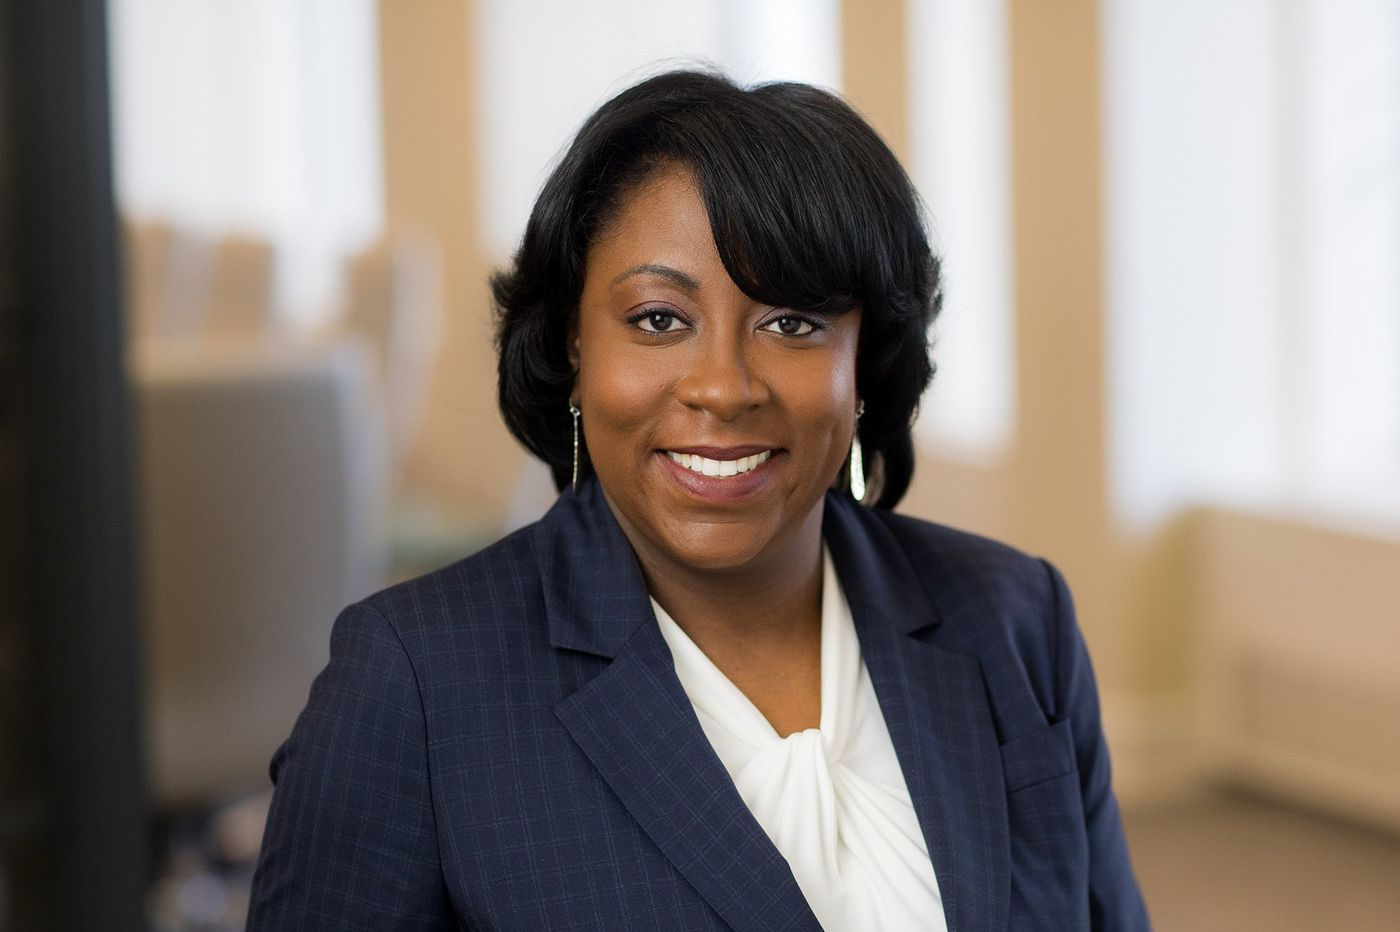 Amber M. Racine, an attorney and leader of the Philadelphia Bar Association, dies at 38